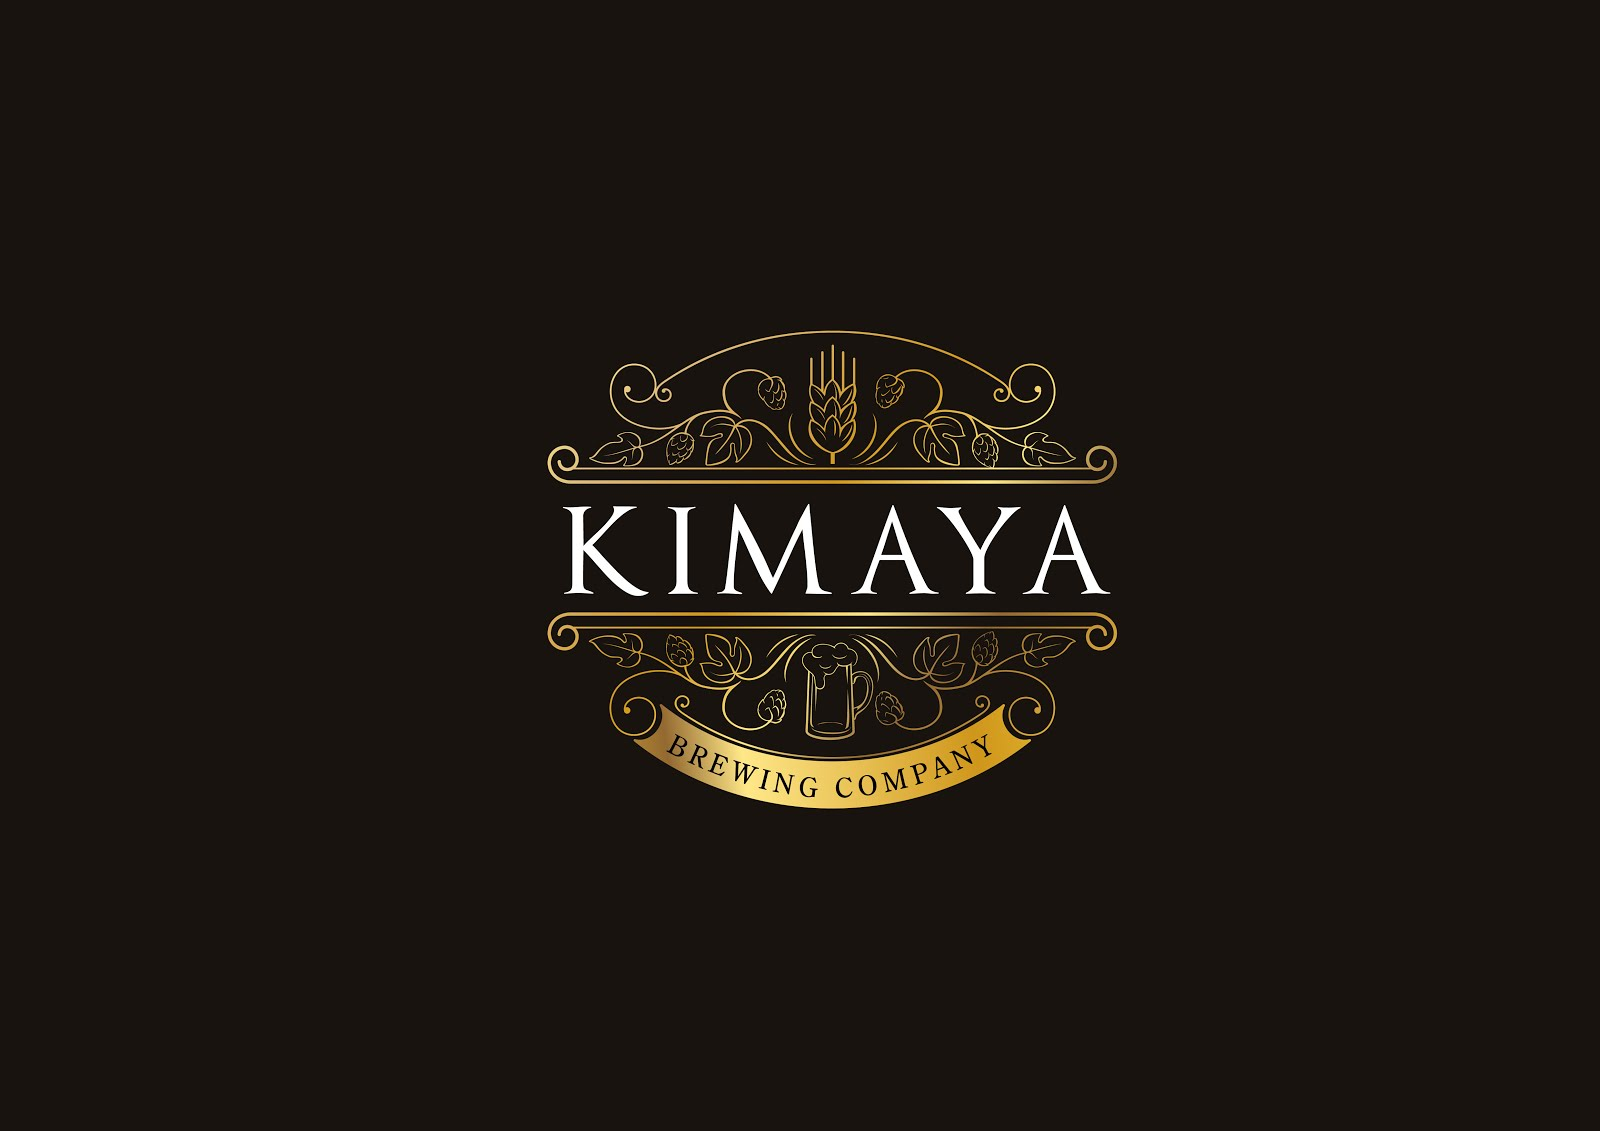 Kimaya Brewing Company